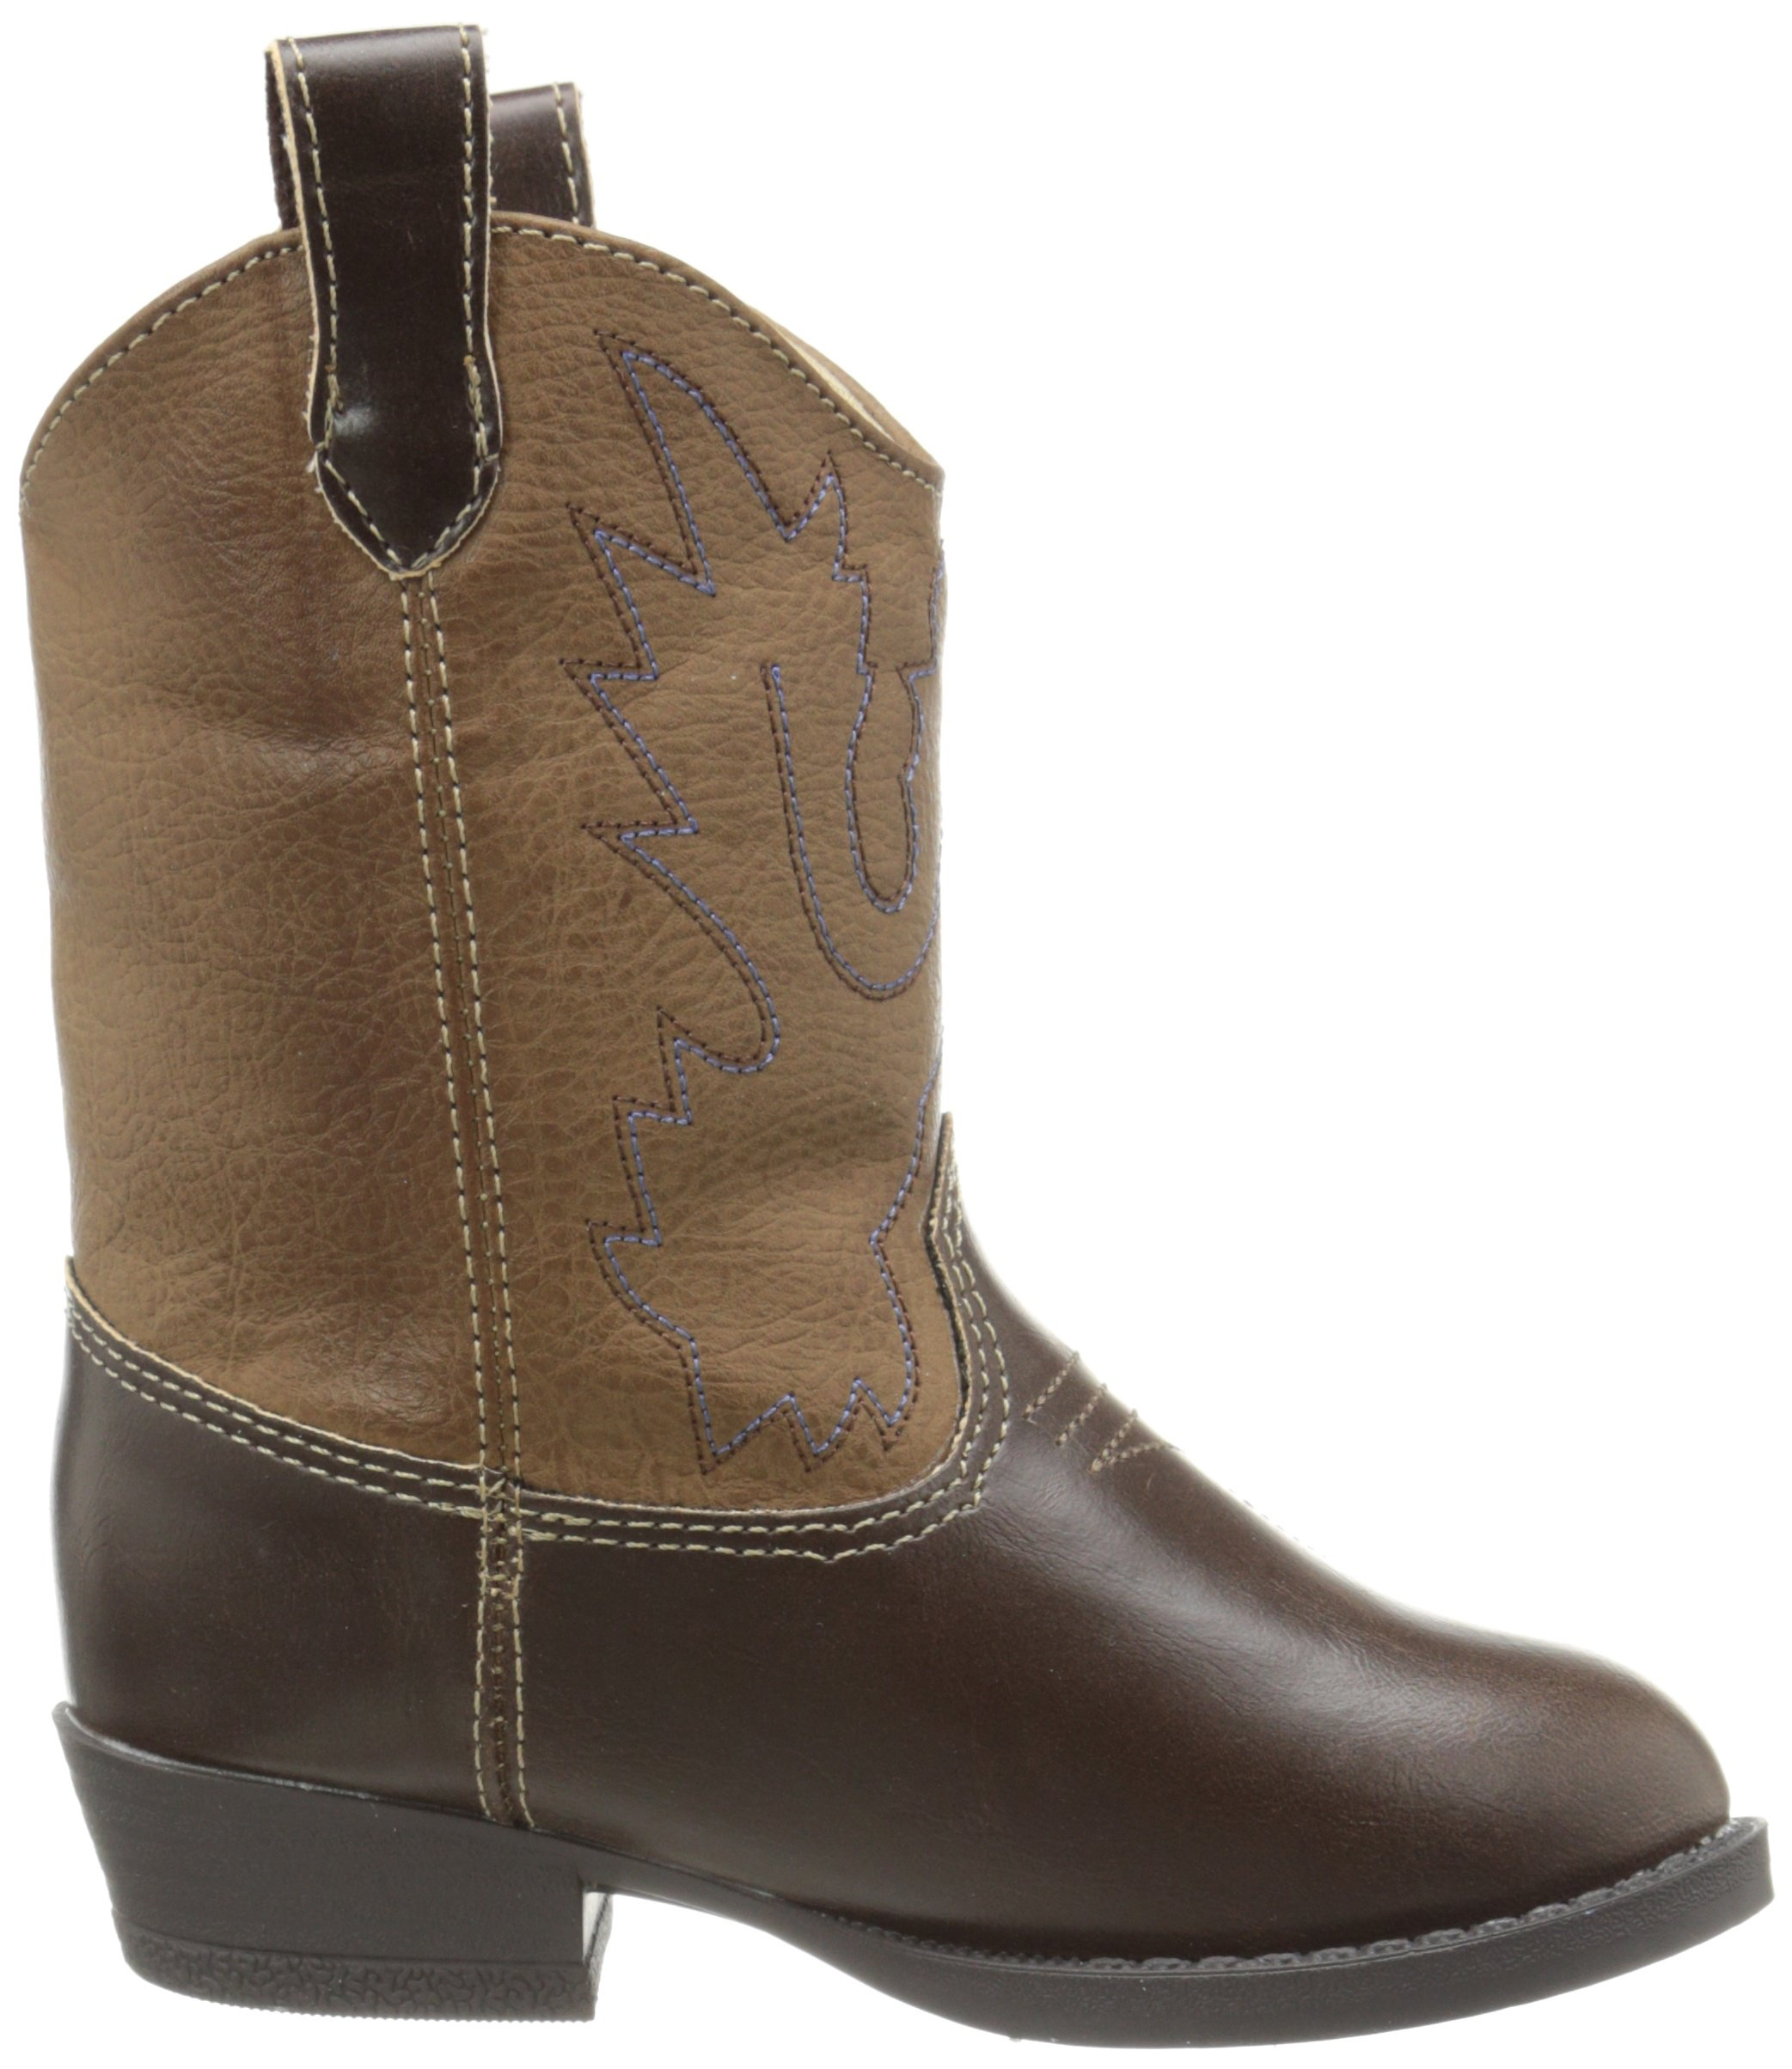 Baby Deer Western Boot (Little Kid), Brown, 11 M US Little Kid by Baby Deer (Image #6)